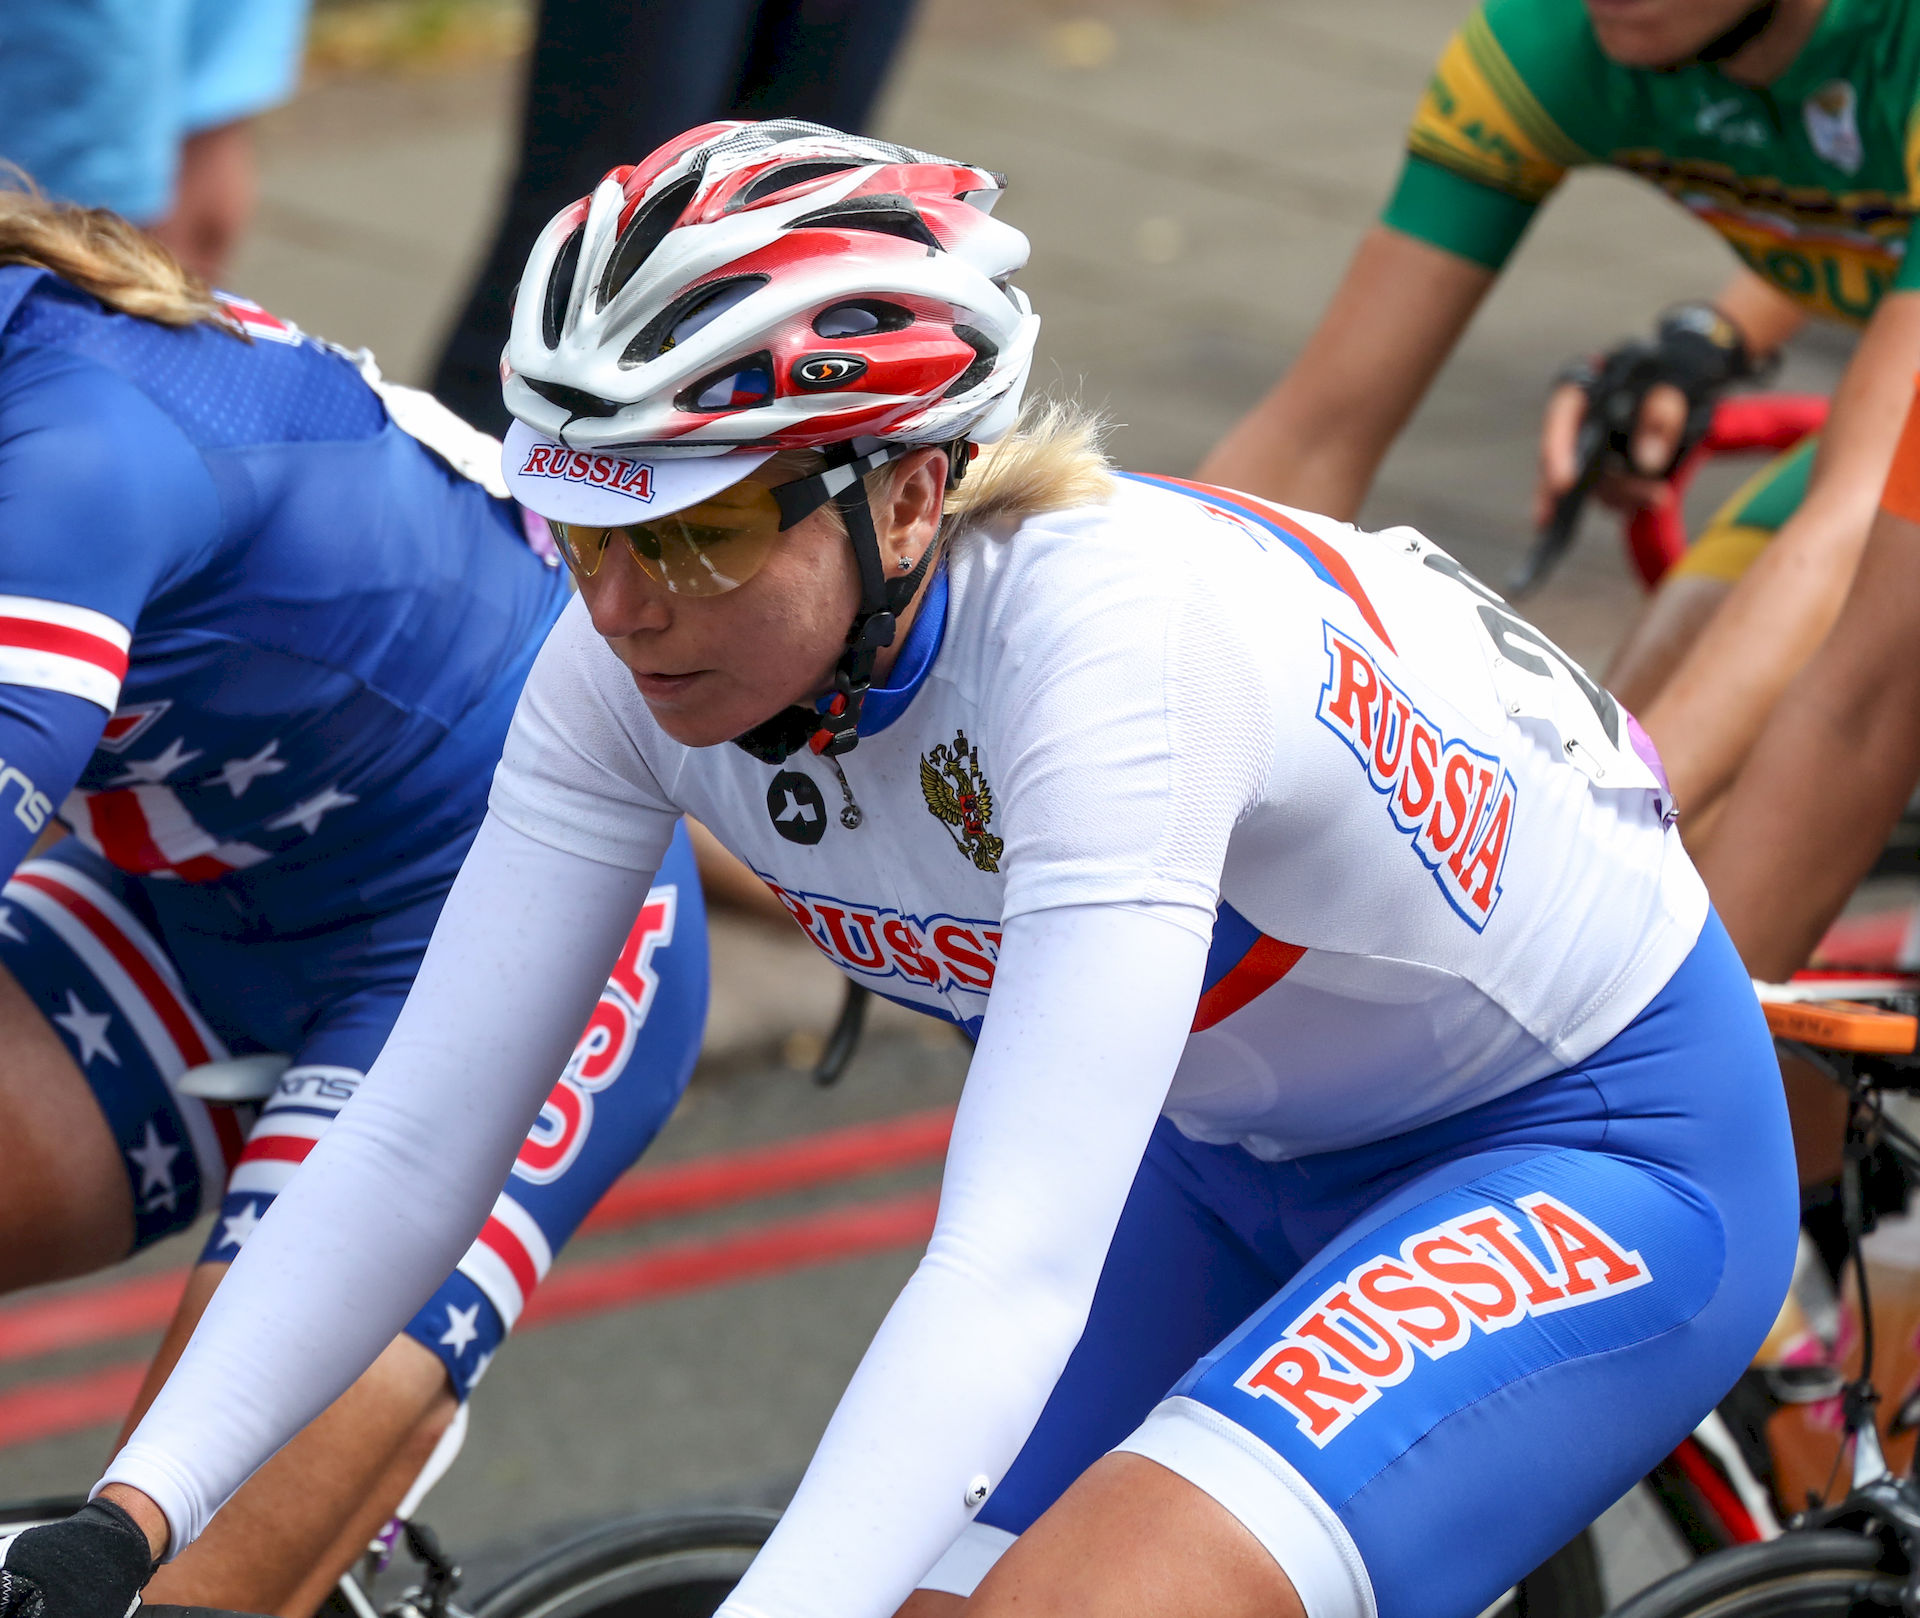 Photo of Olga Zabelinskaya: Russian road cyclist, Olympic medal winner